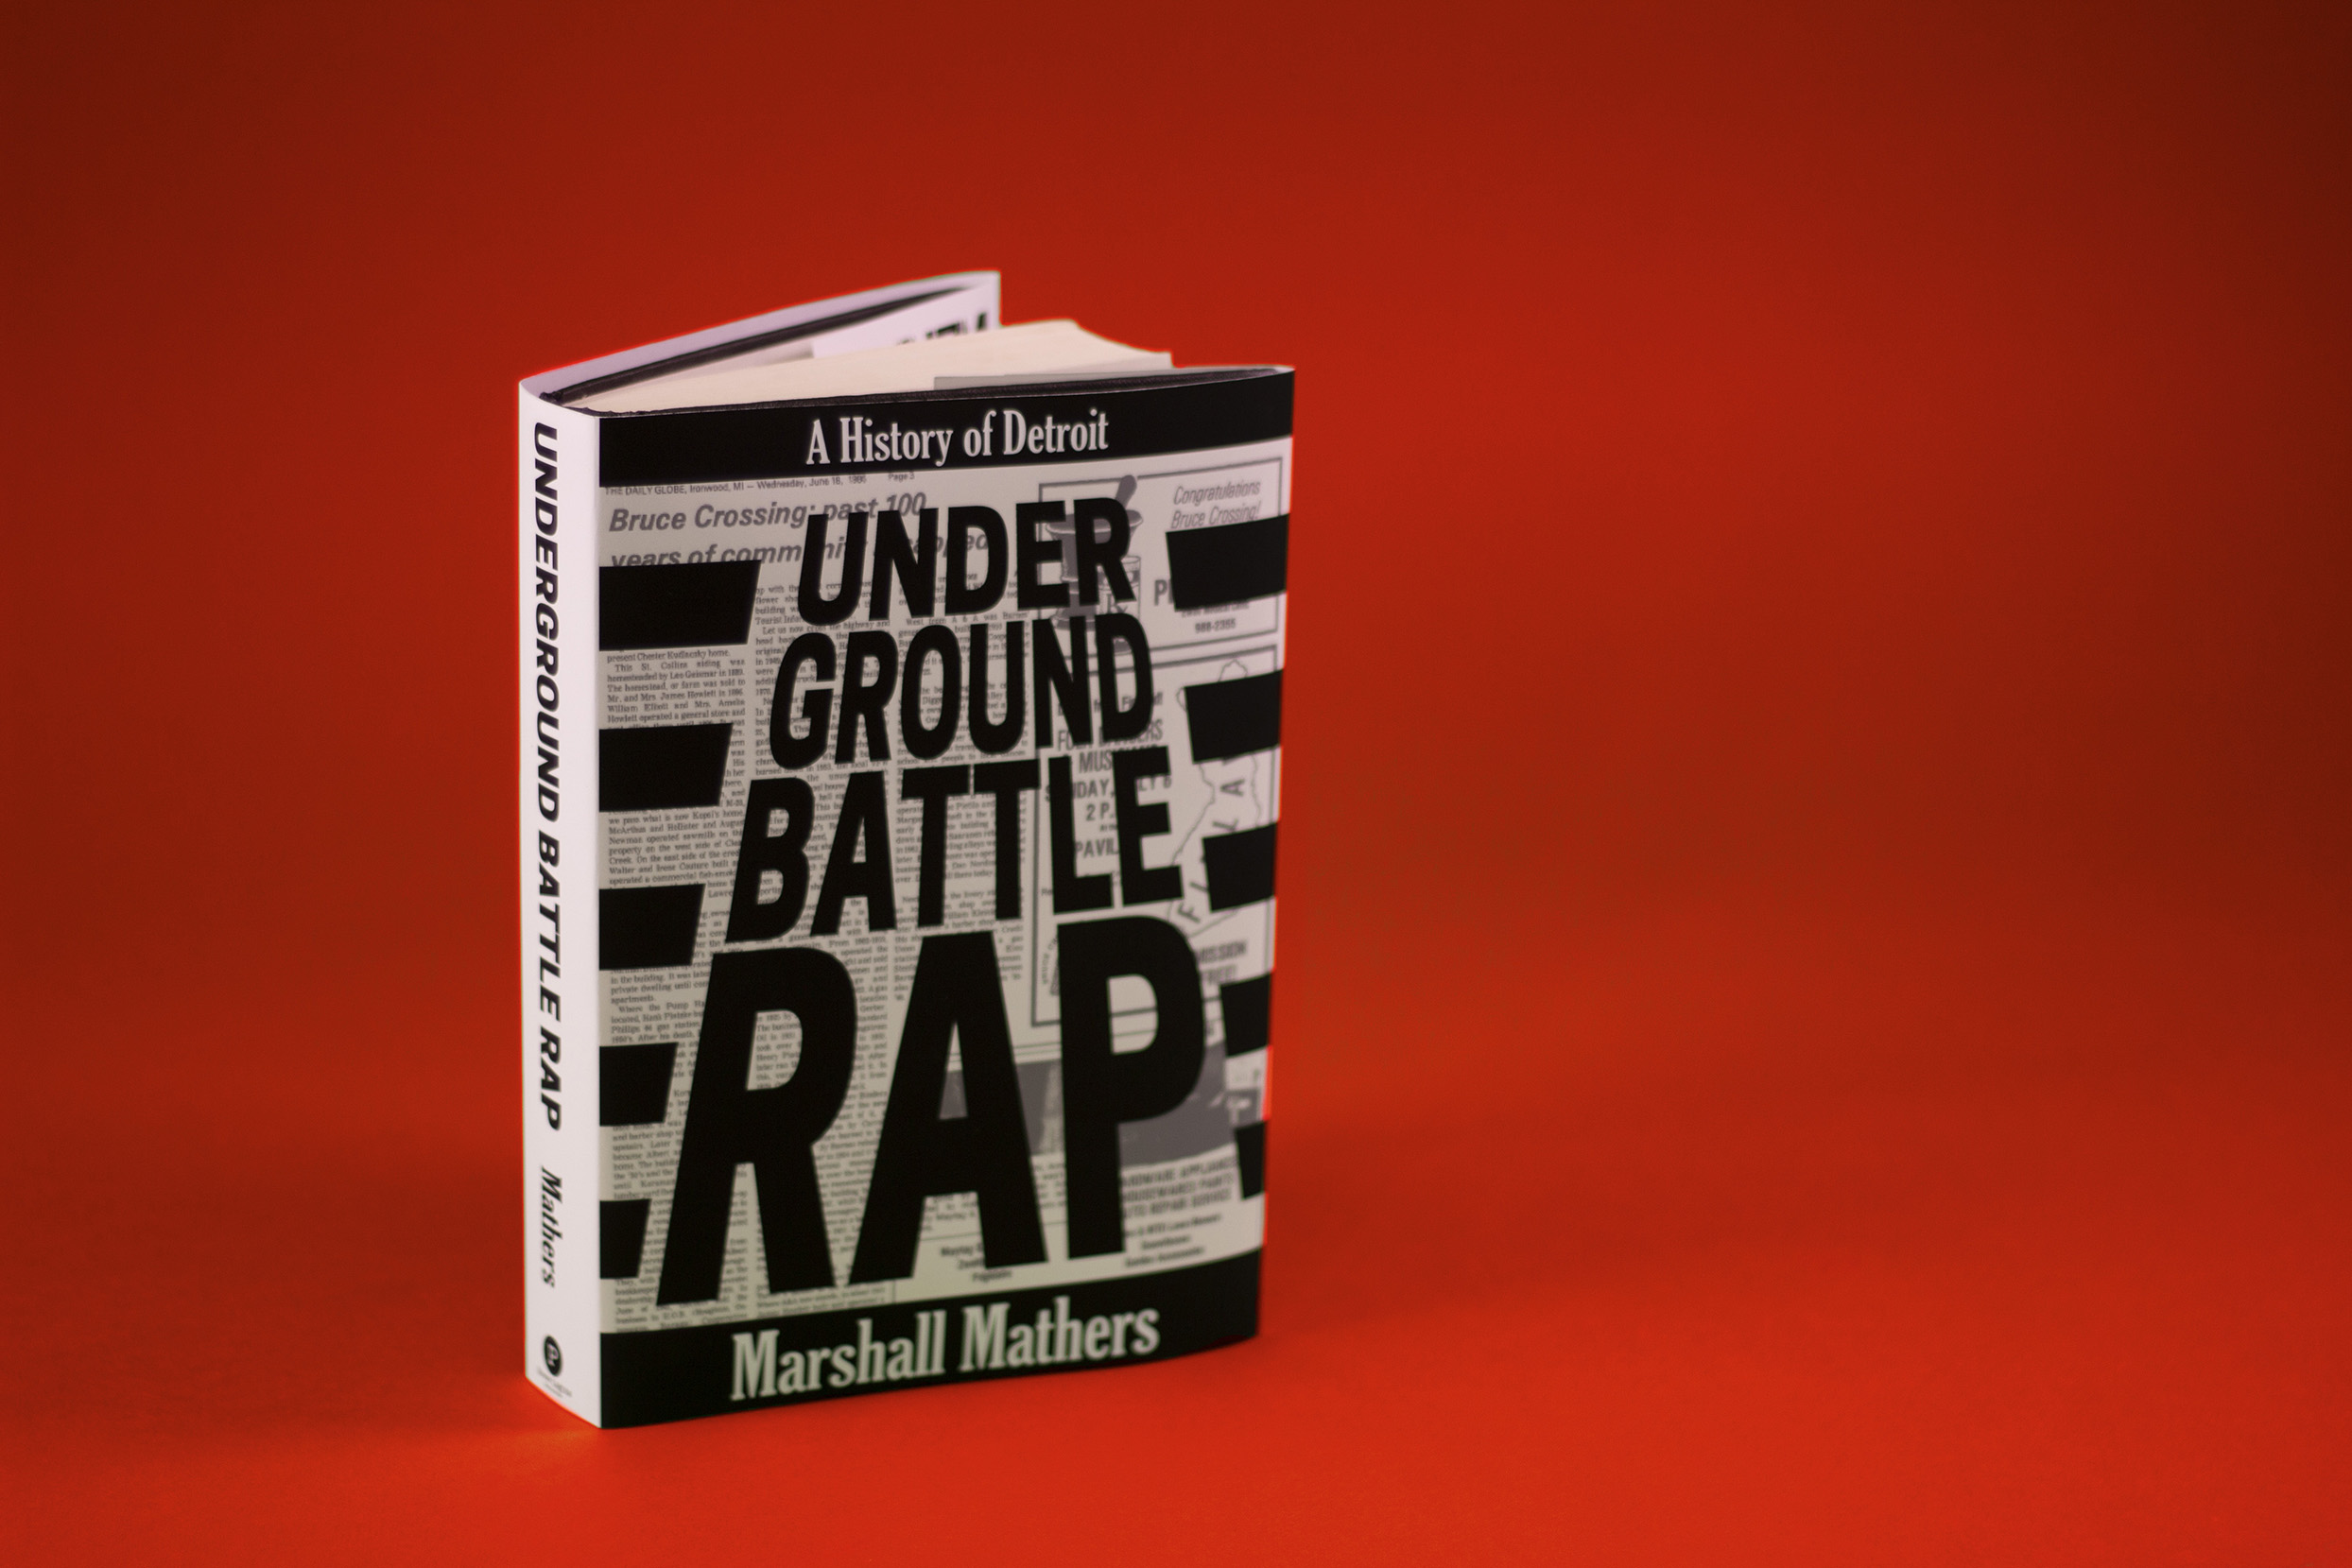 promotional book - Released in conjunction with his comeback tour,Underground Battle Rapis a history of the underground battle rap scene in Detroit where Eminem initially made his name.